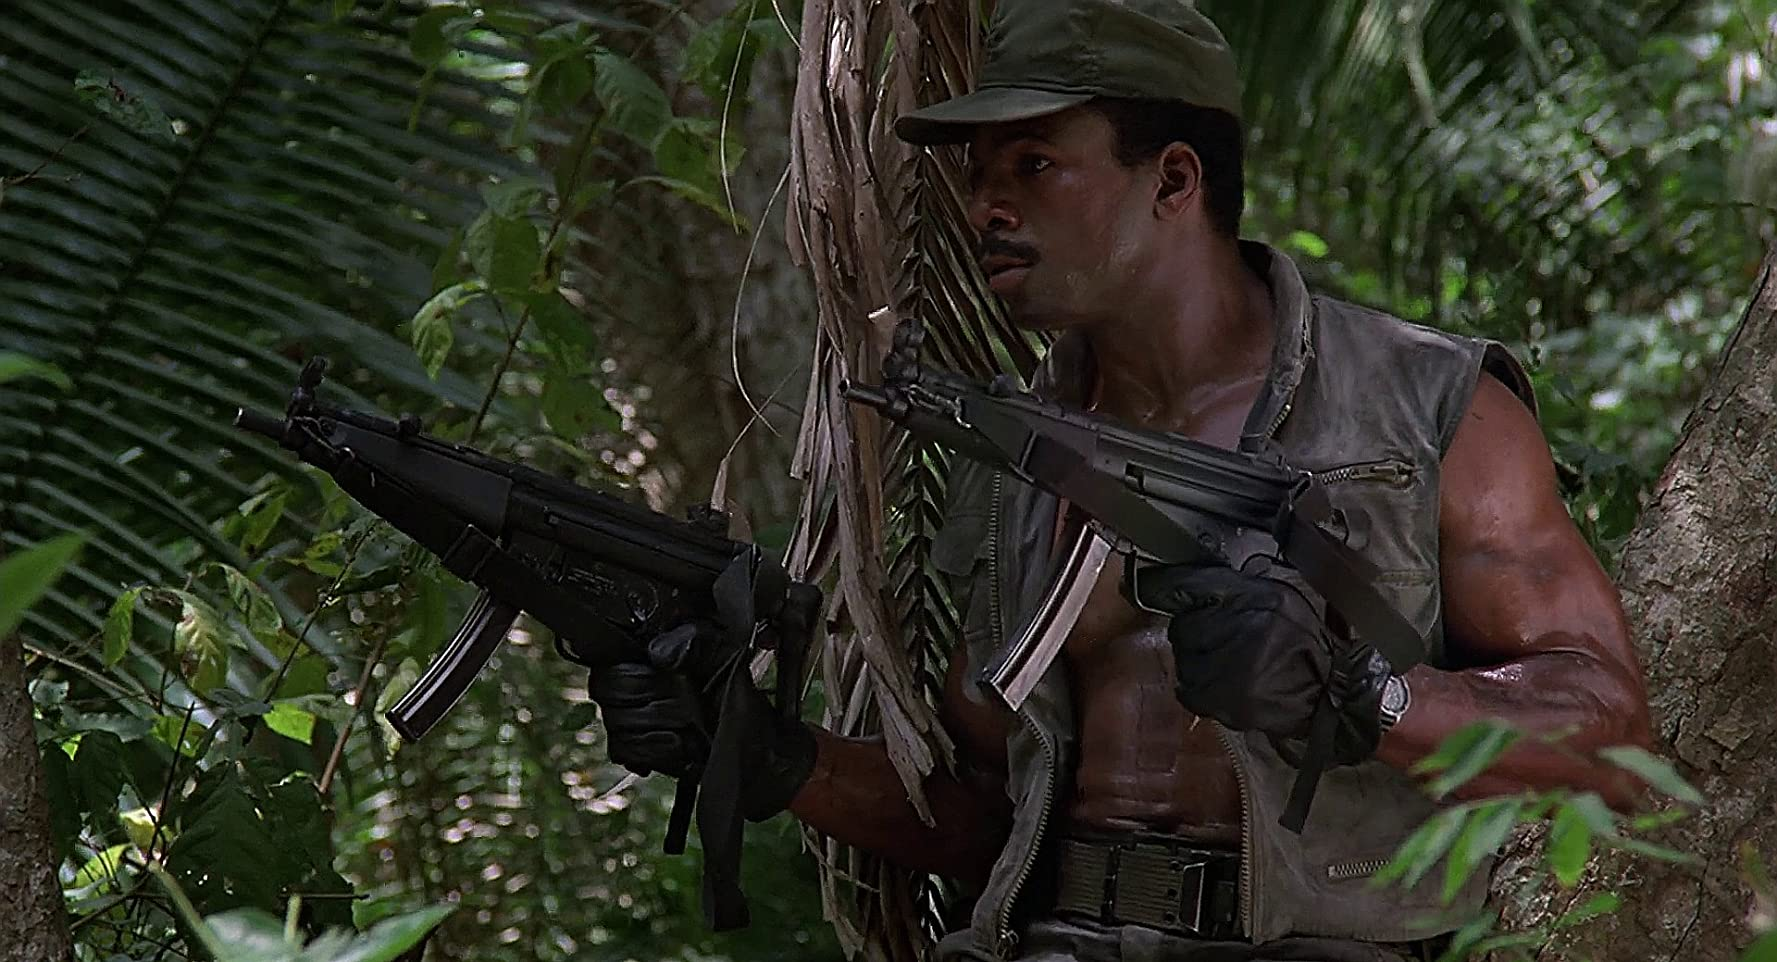 Carl Weathers in Predator (1987)